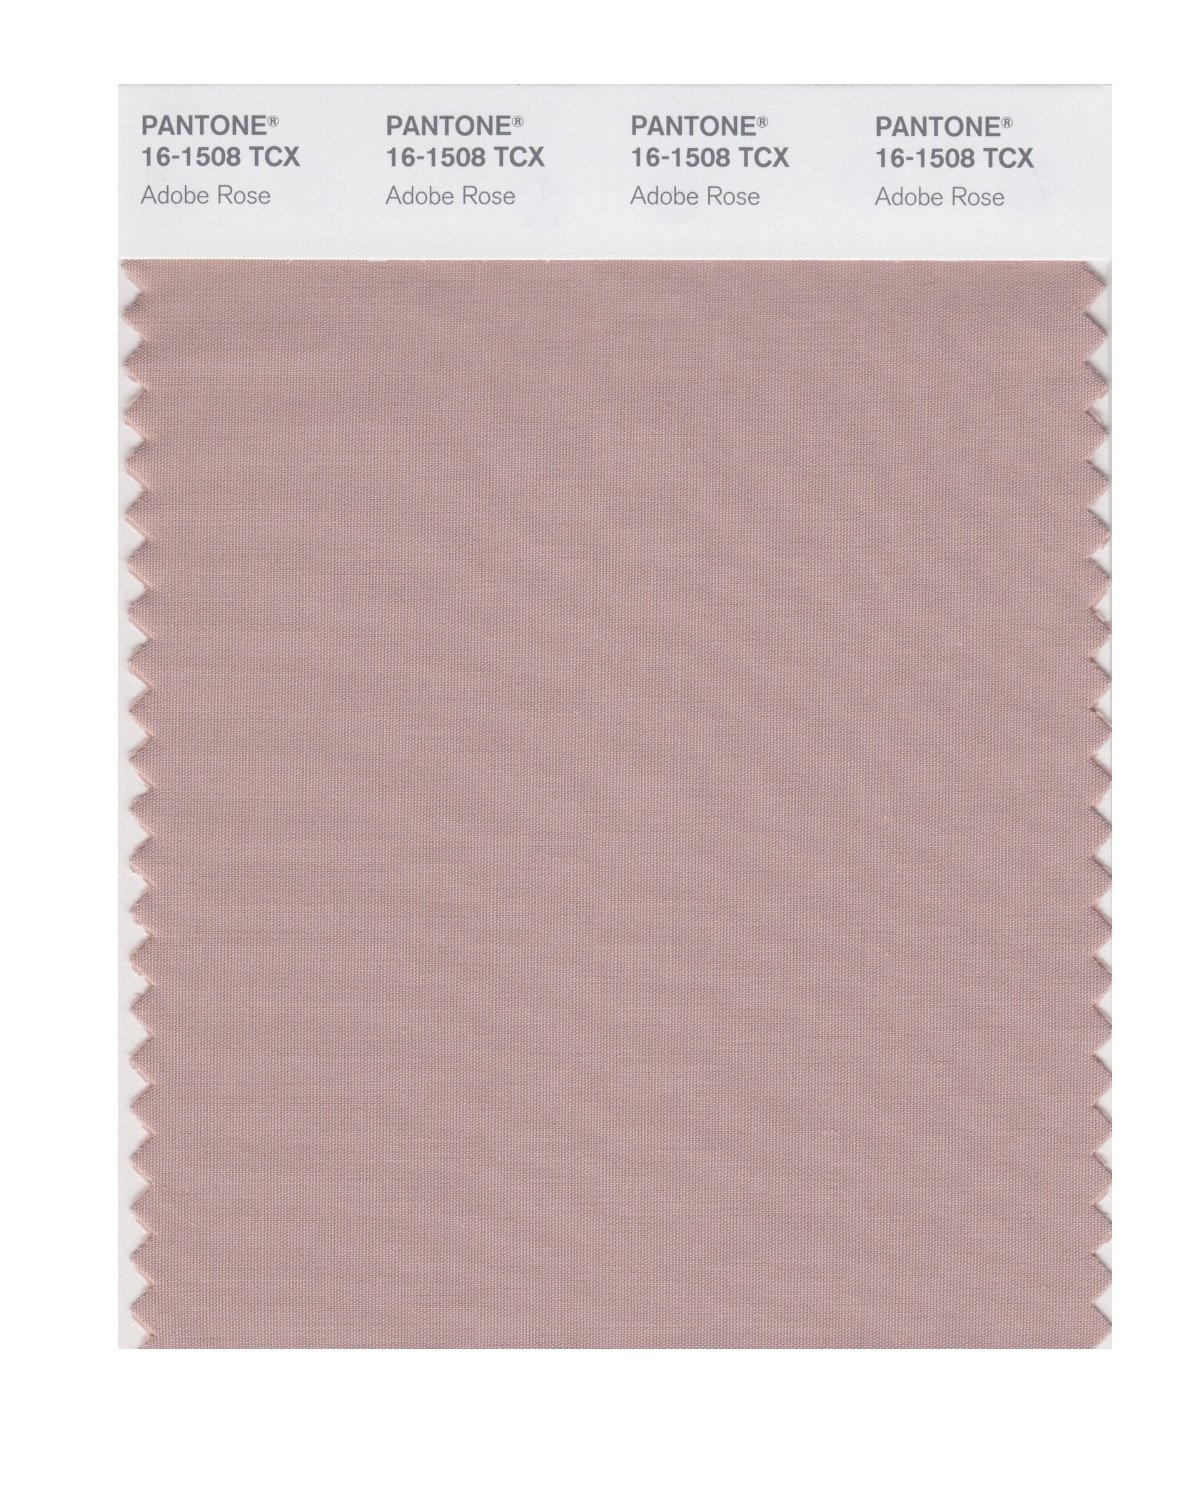 Pantone Smart Swatch 16-1508 Adobe Rose